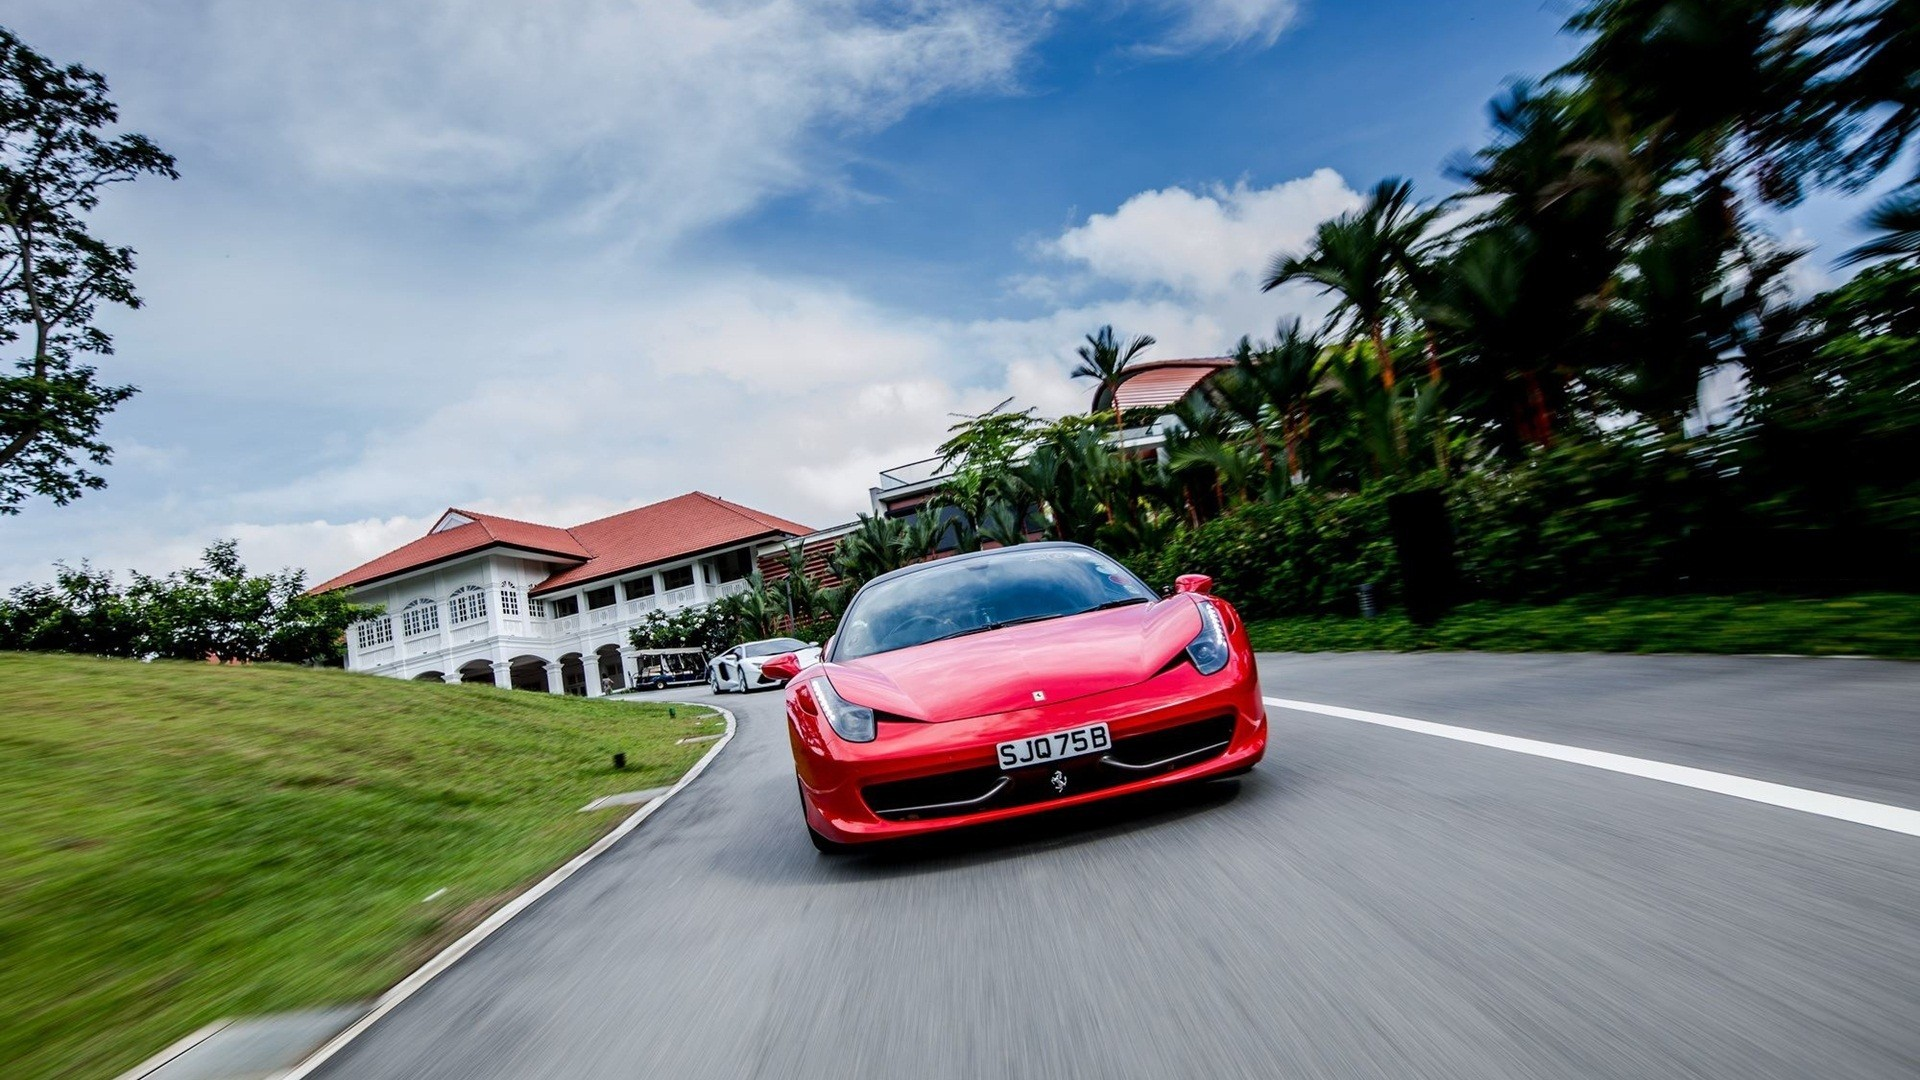 458 red cars-#41